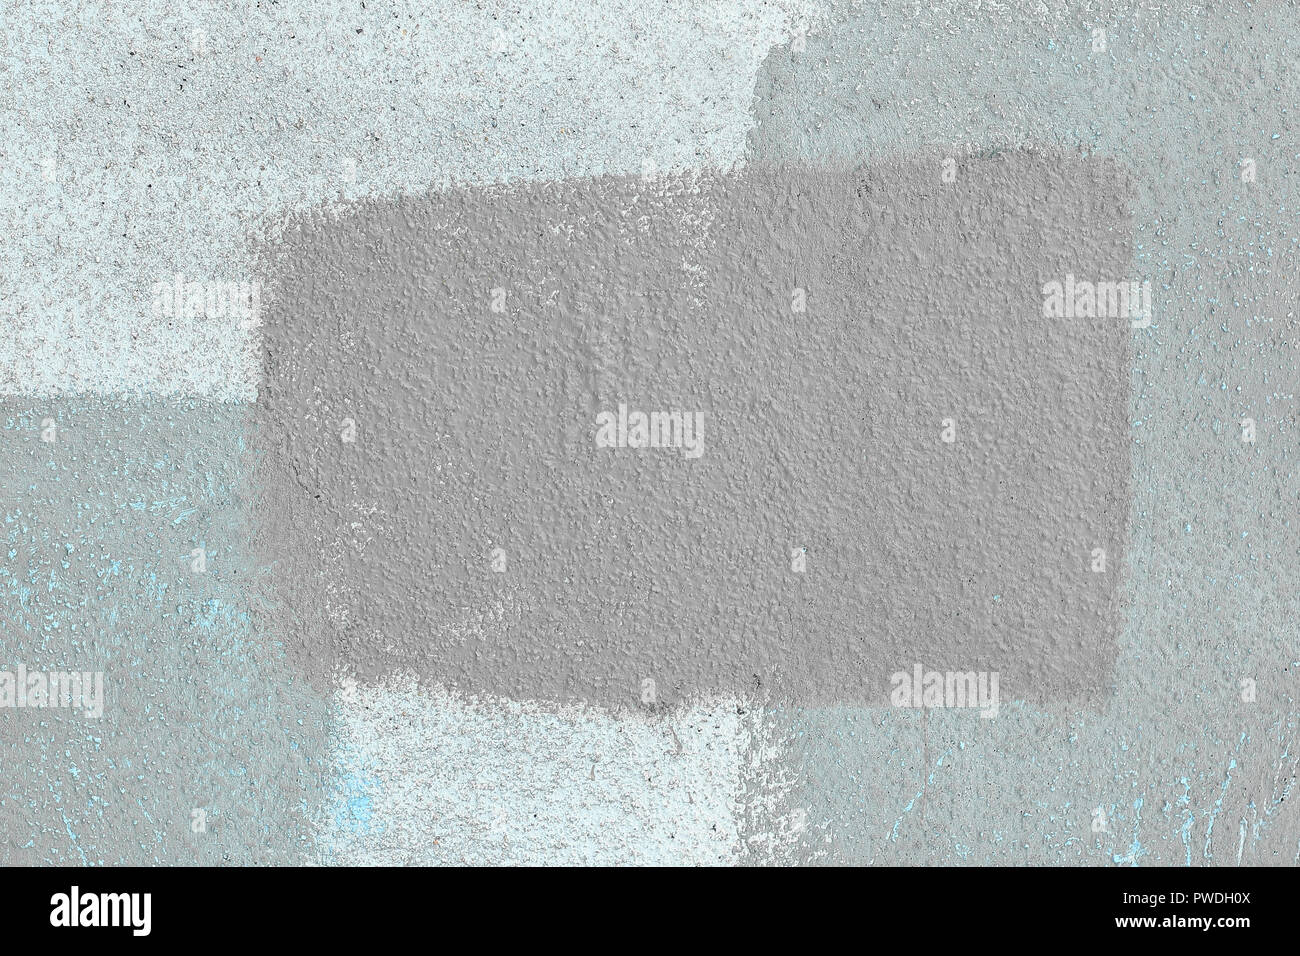 Pittura Nome Astratto O Concreto Grey Paint Wall Immagini Grey Paint Wall Fotos Stock Alamy